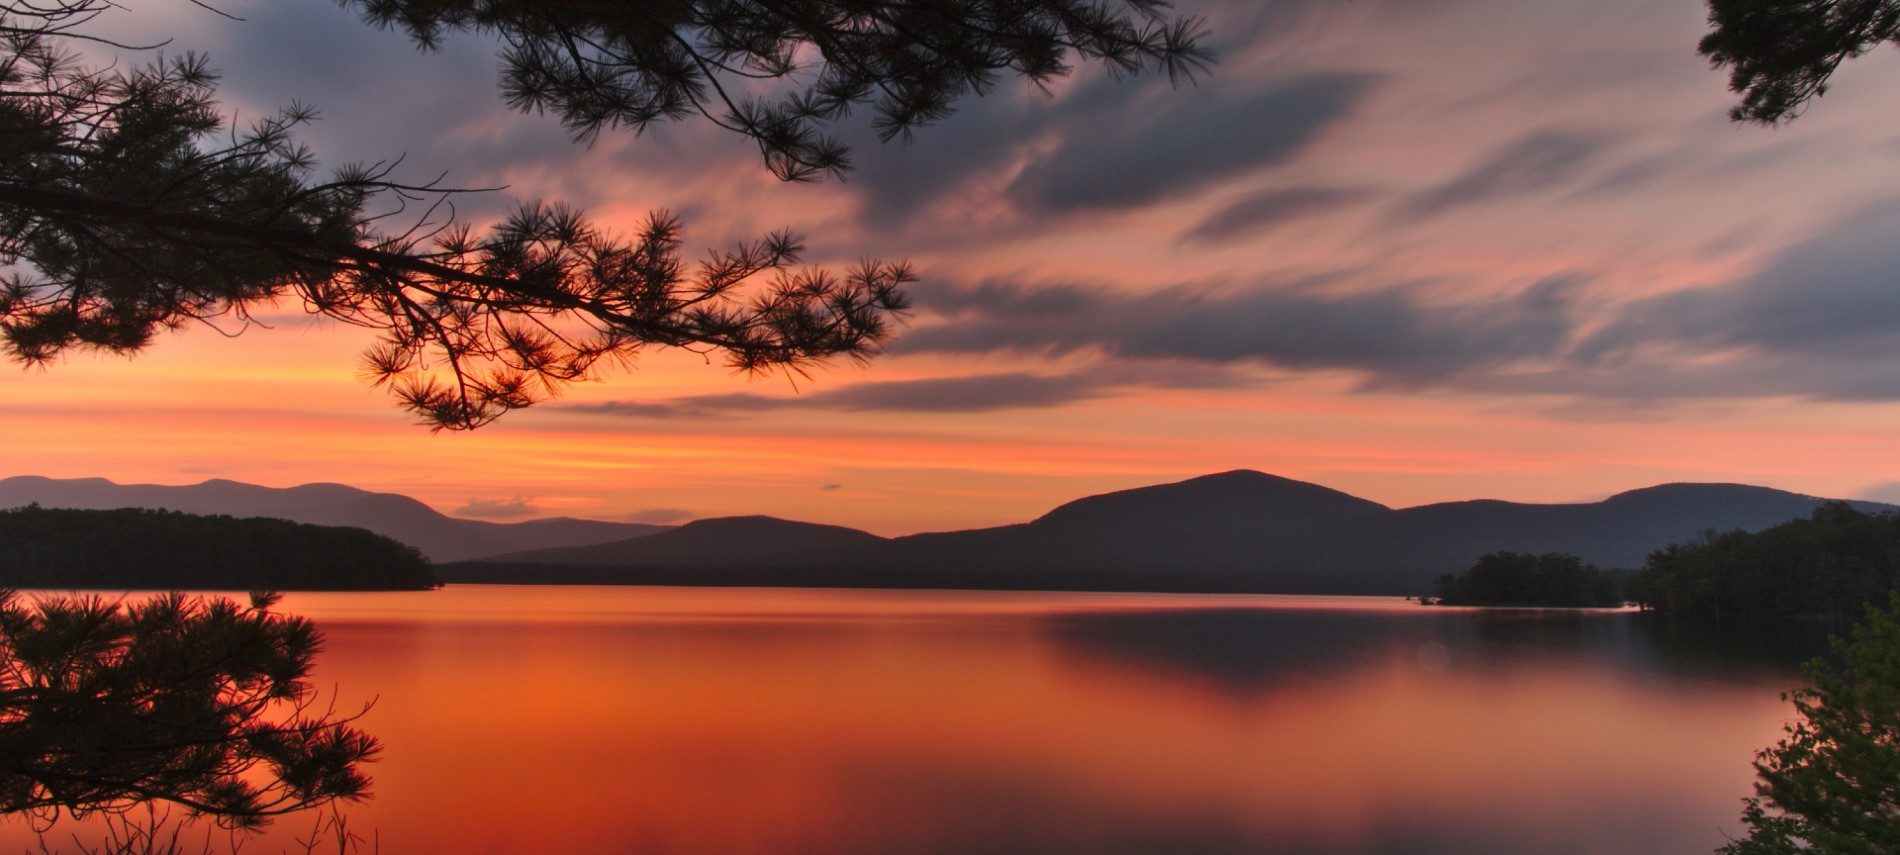 Large reservoir with view of mountain range in background surrounded by bright orange skies at dusk